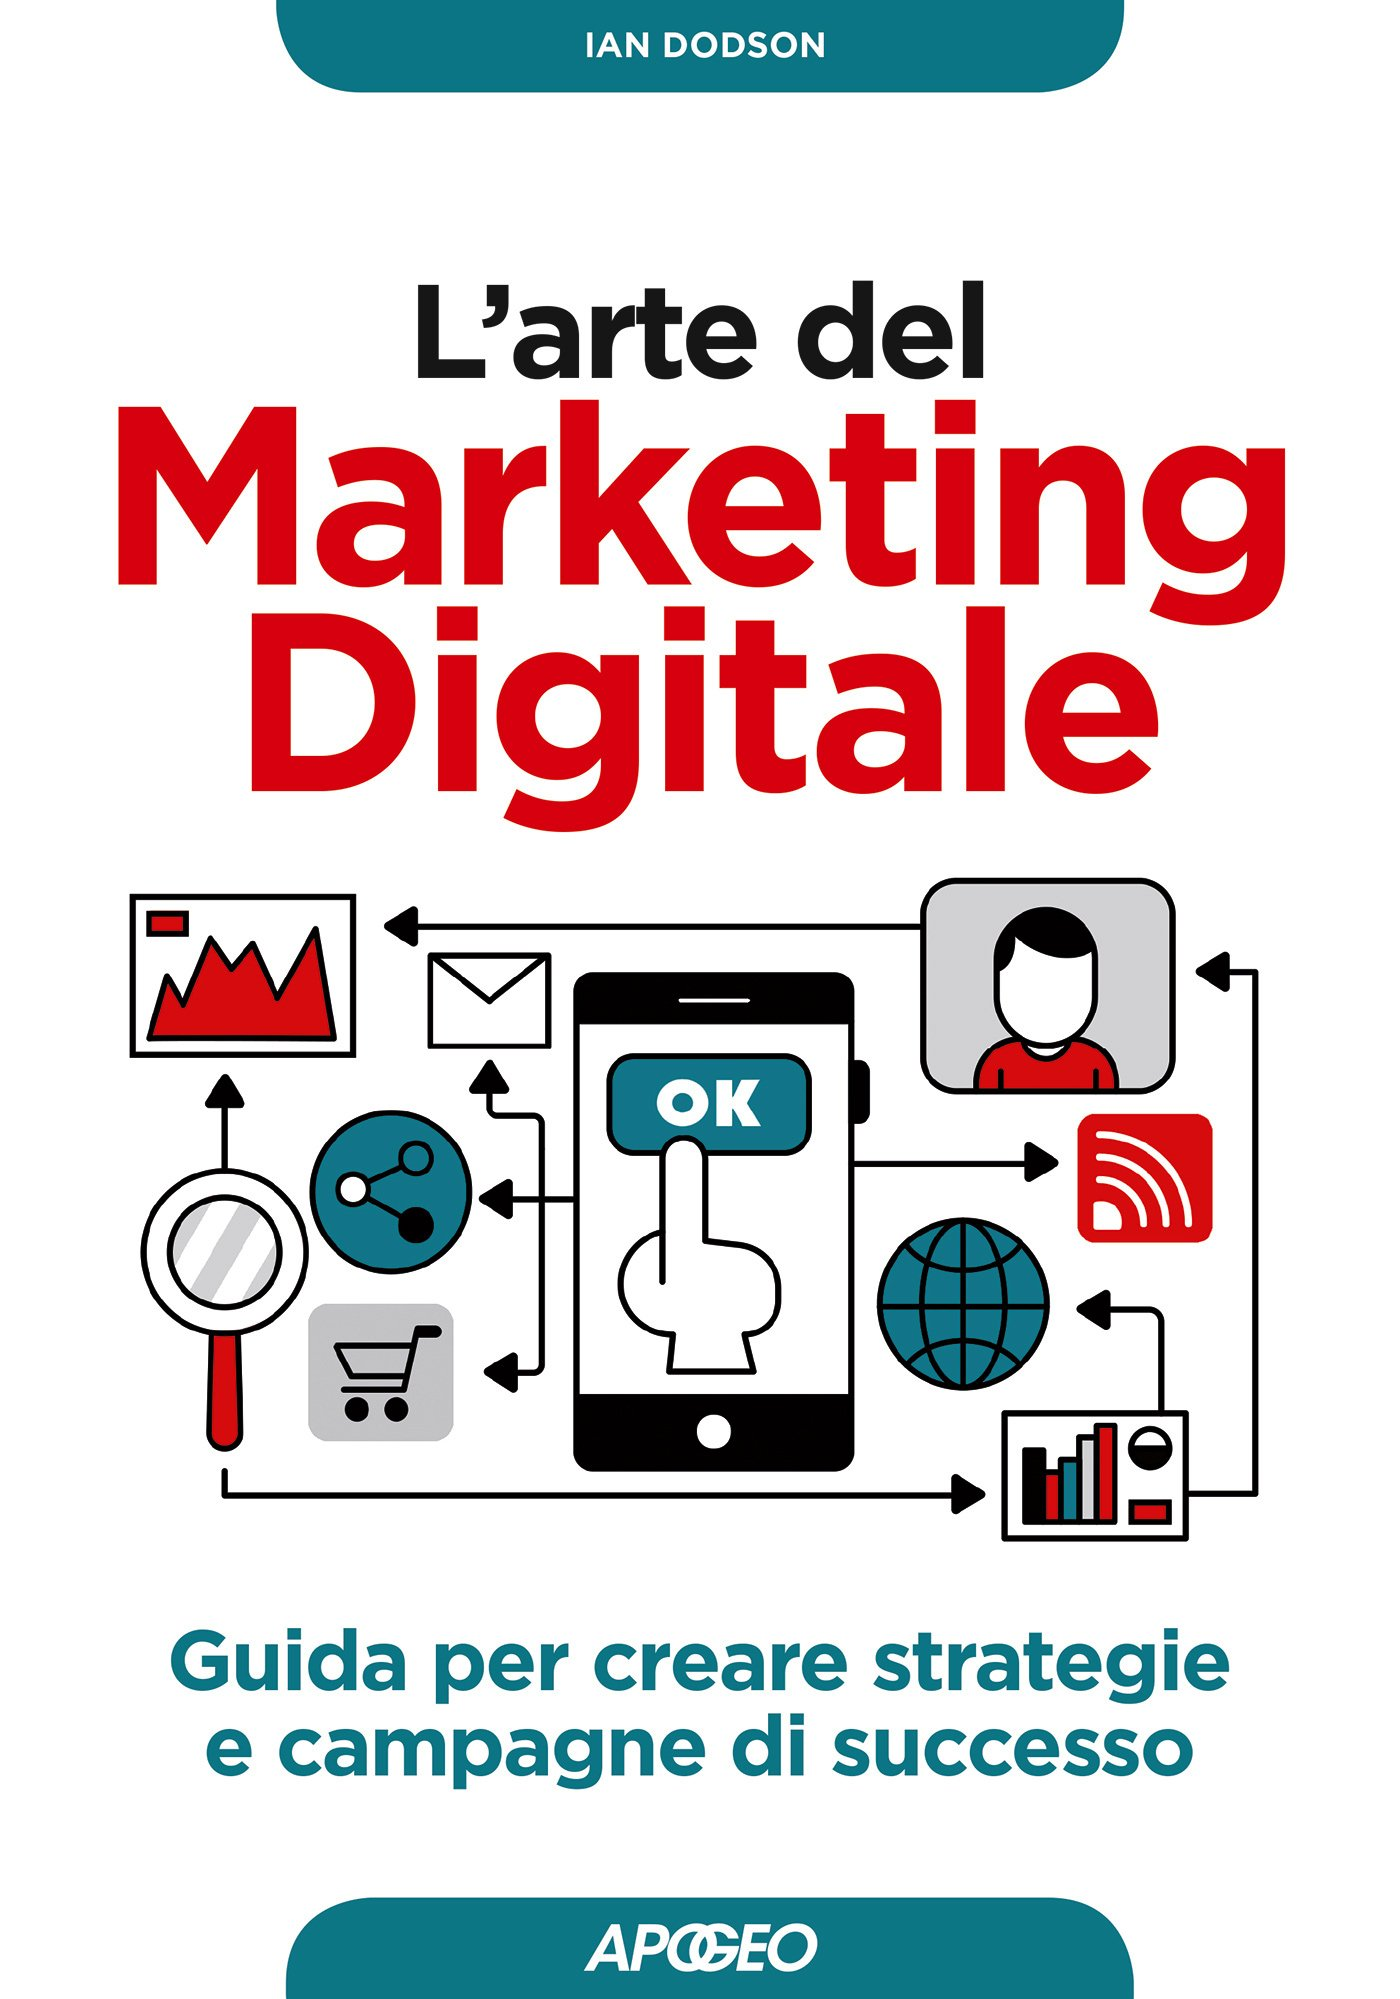 Image OfL'arte Del Marketing Digitale: Guida Per Creare Strategie E Campagne Di Successo (Web Marketing Vol. 1)